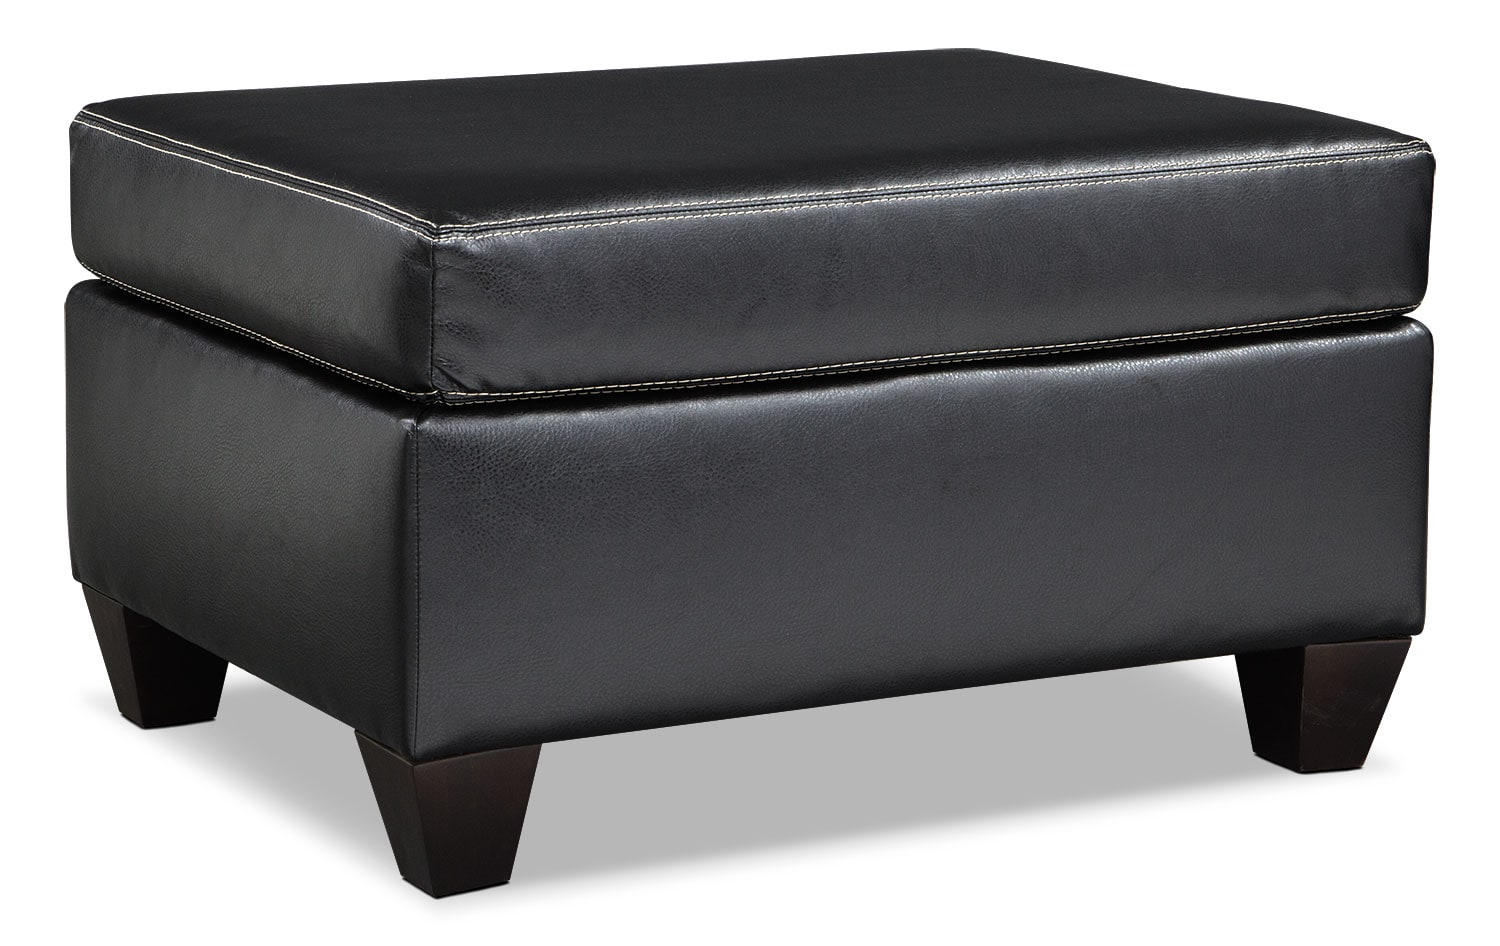 Living Room Furniture - Rialto Ottoman - Onyx